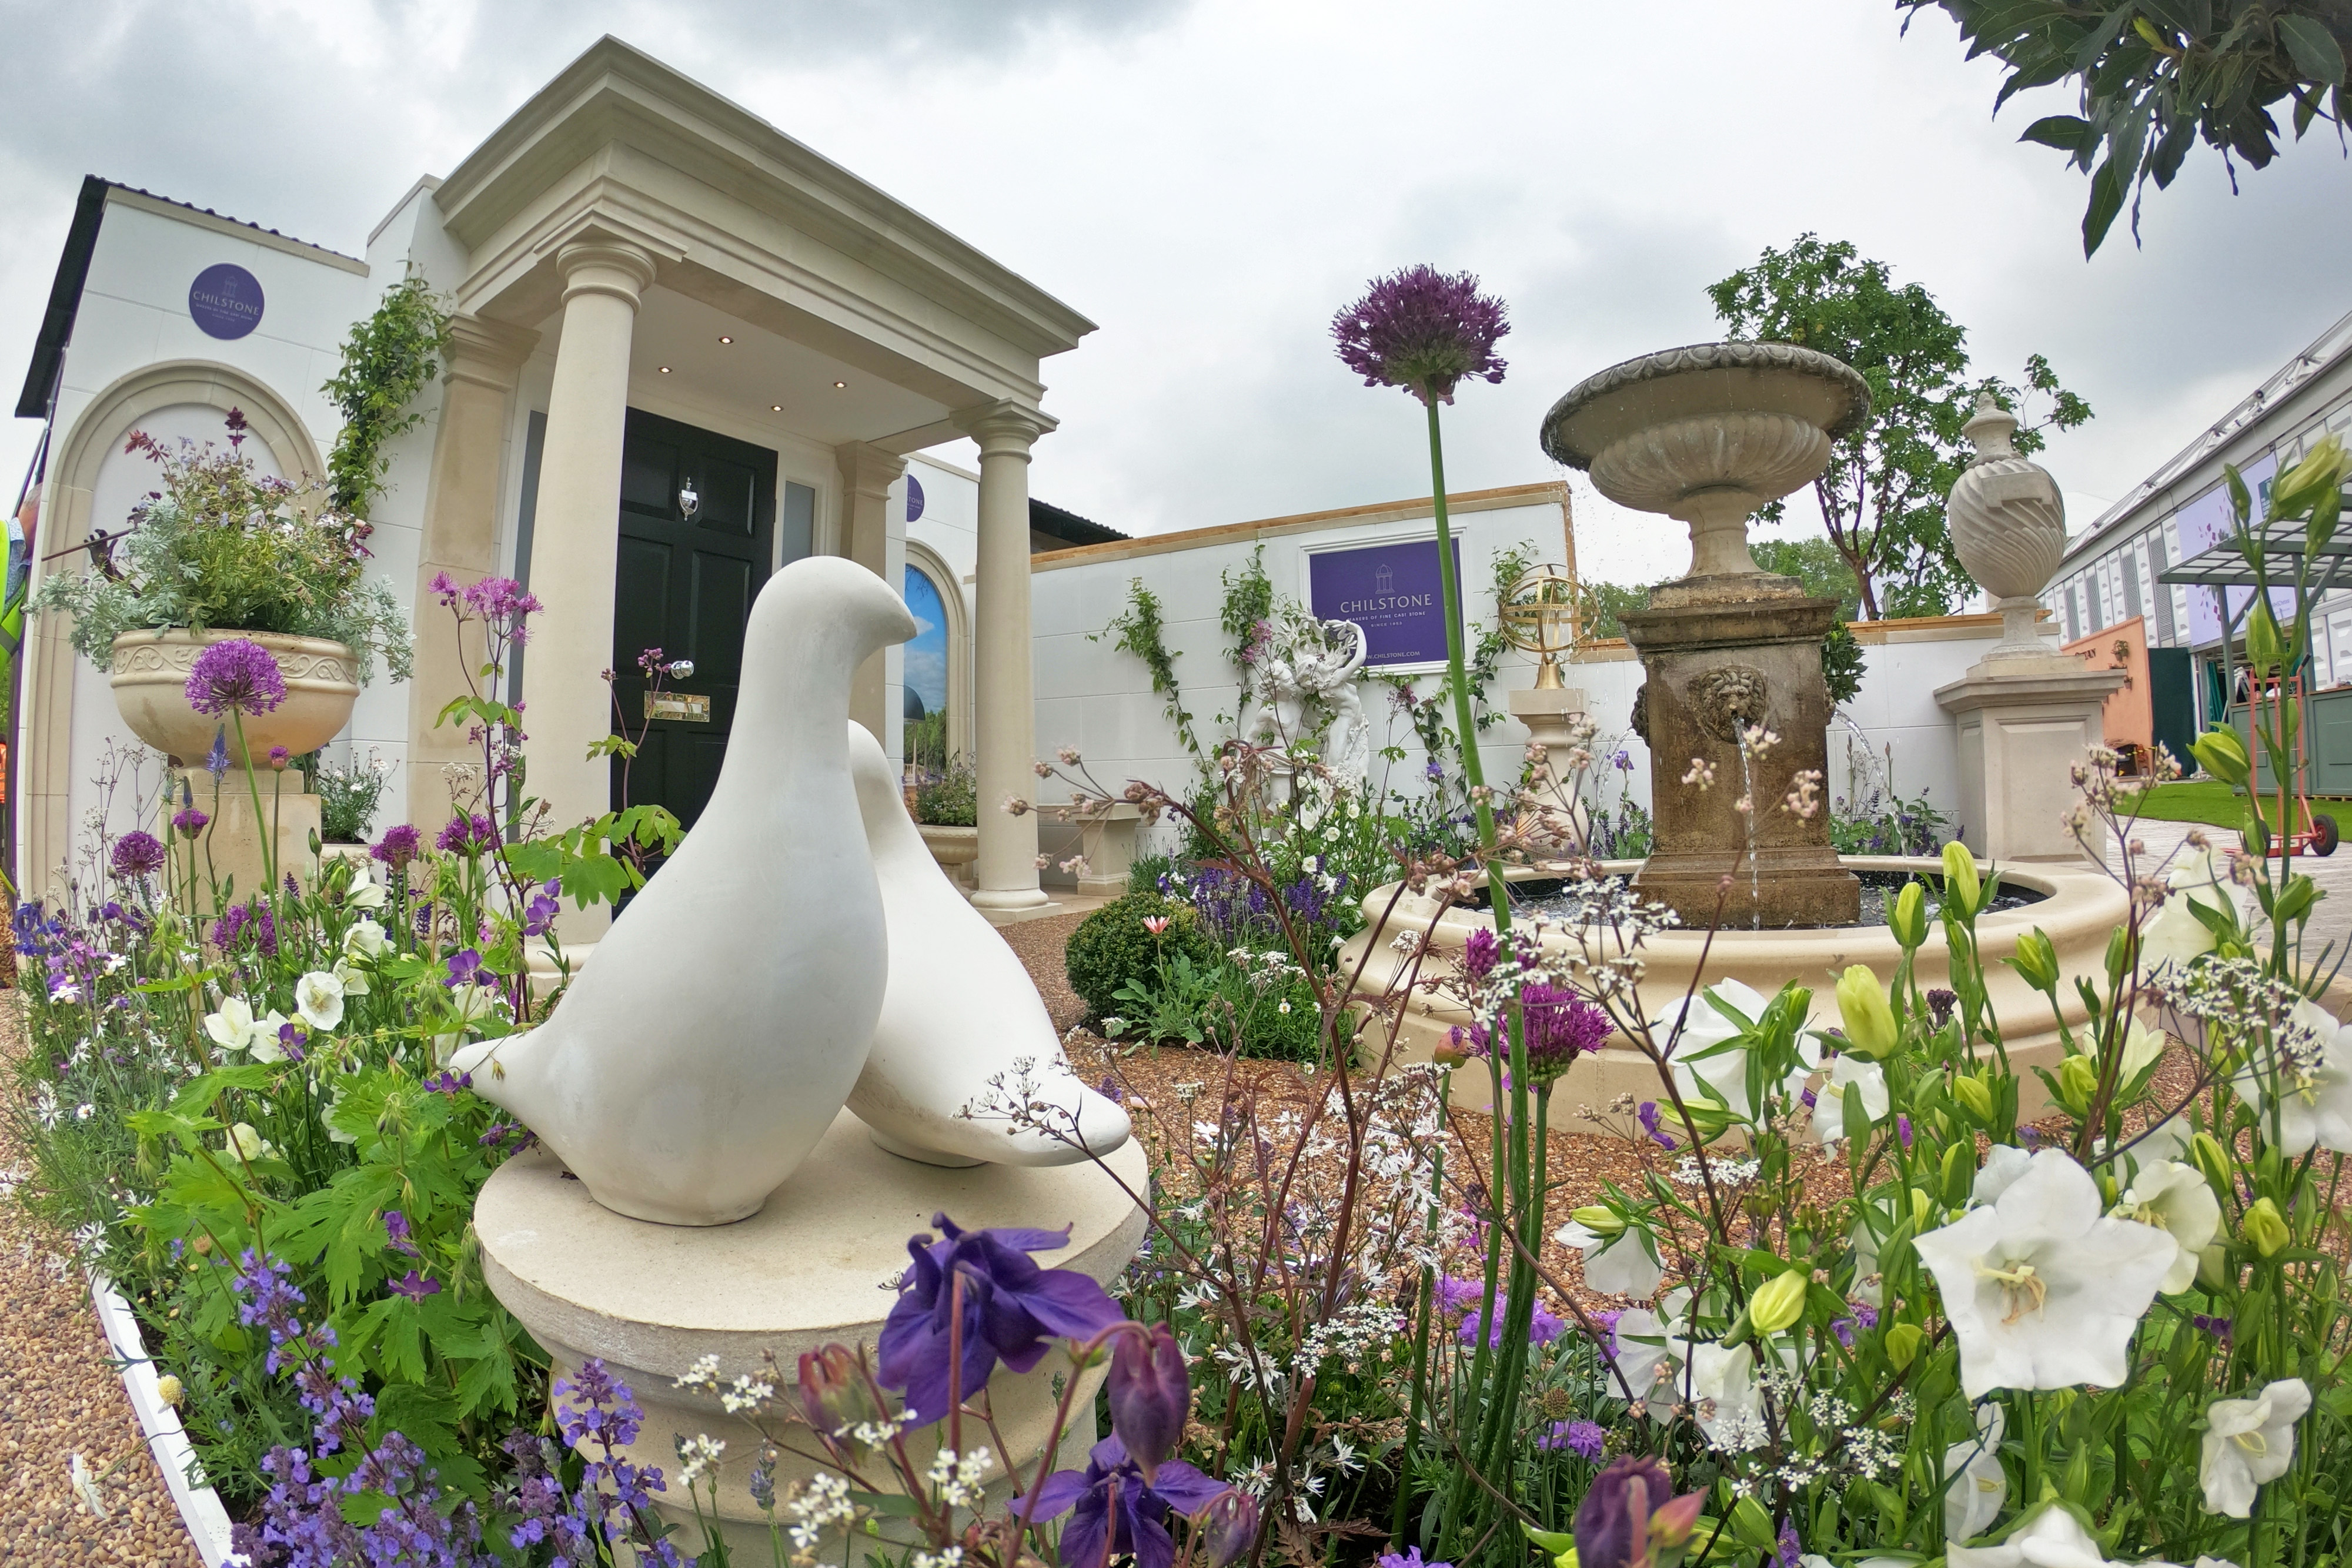 Cast stone dove ornament, fountain and portico featured in RHS Chelsea garden by Chilstone